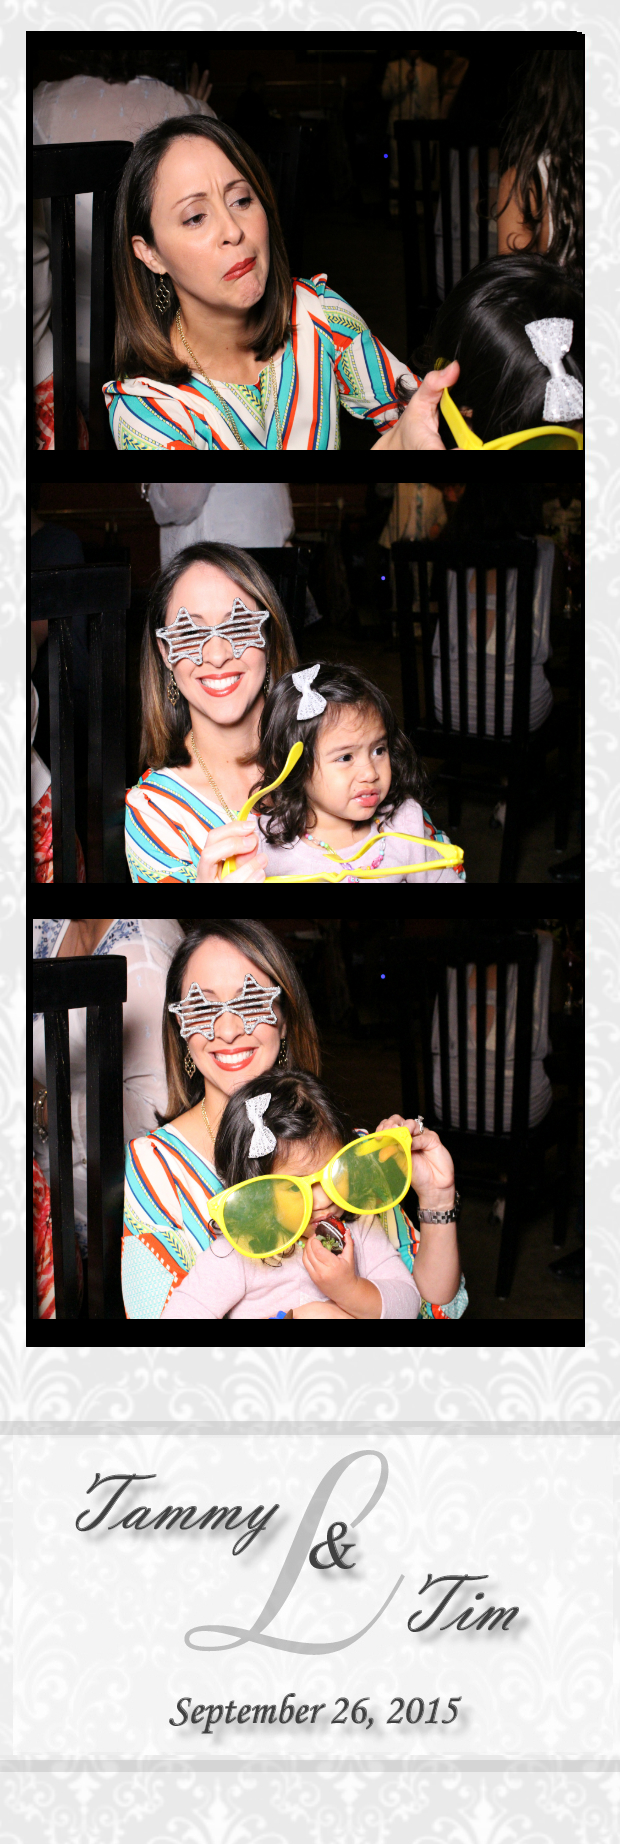 Guest House Events Photo Booth Strips T&T (12).jpg